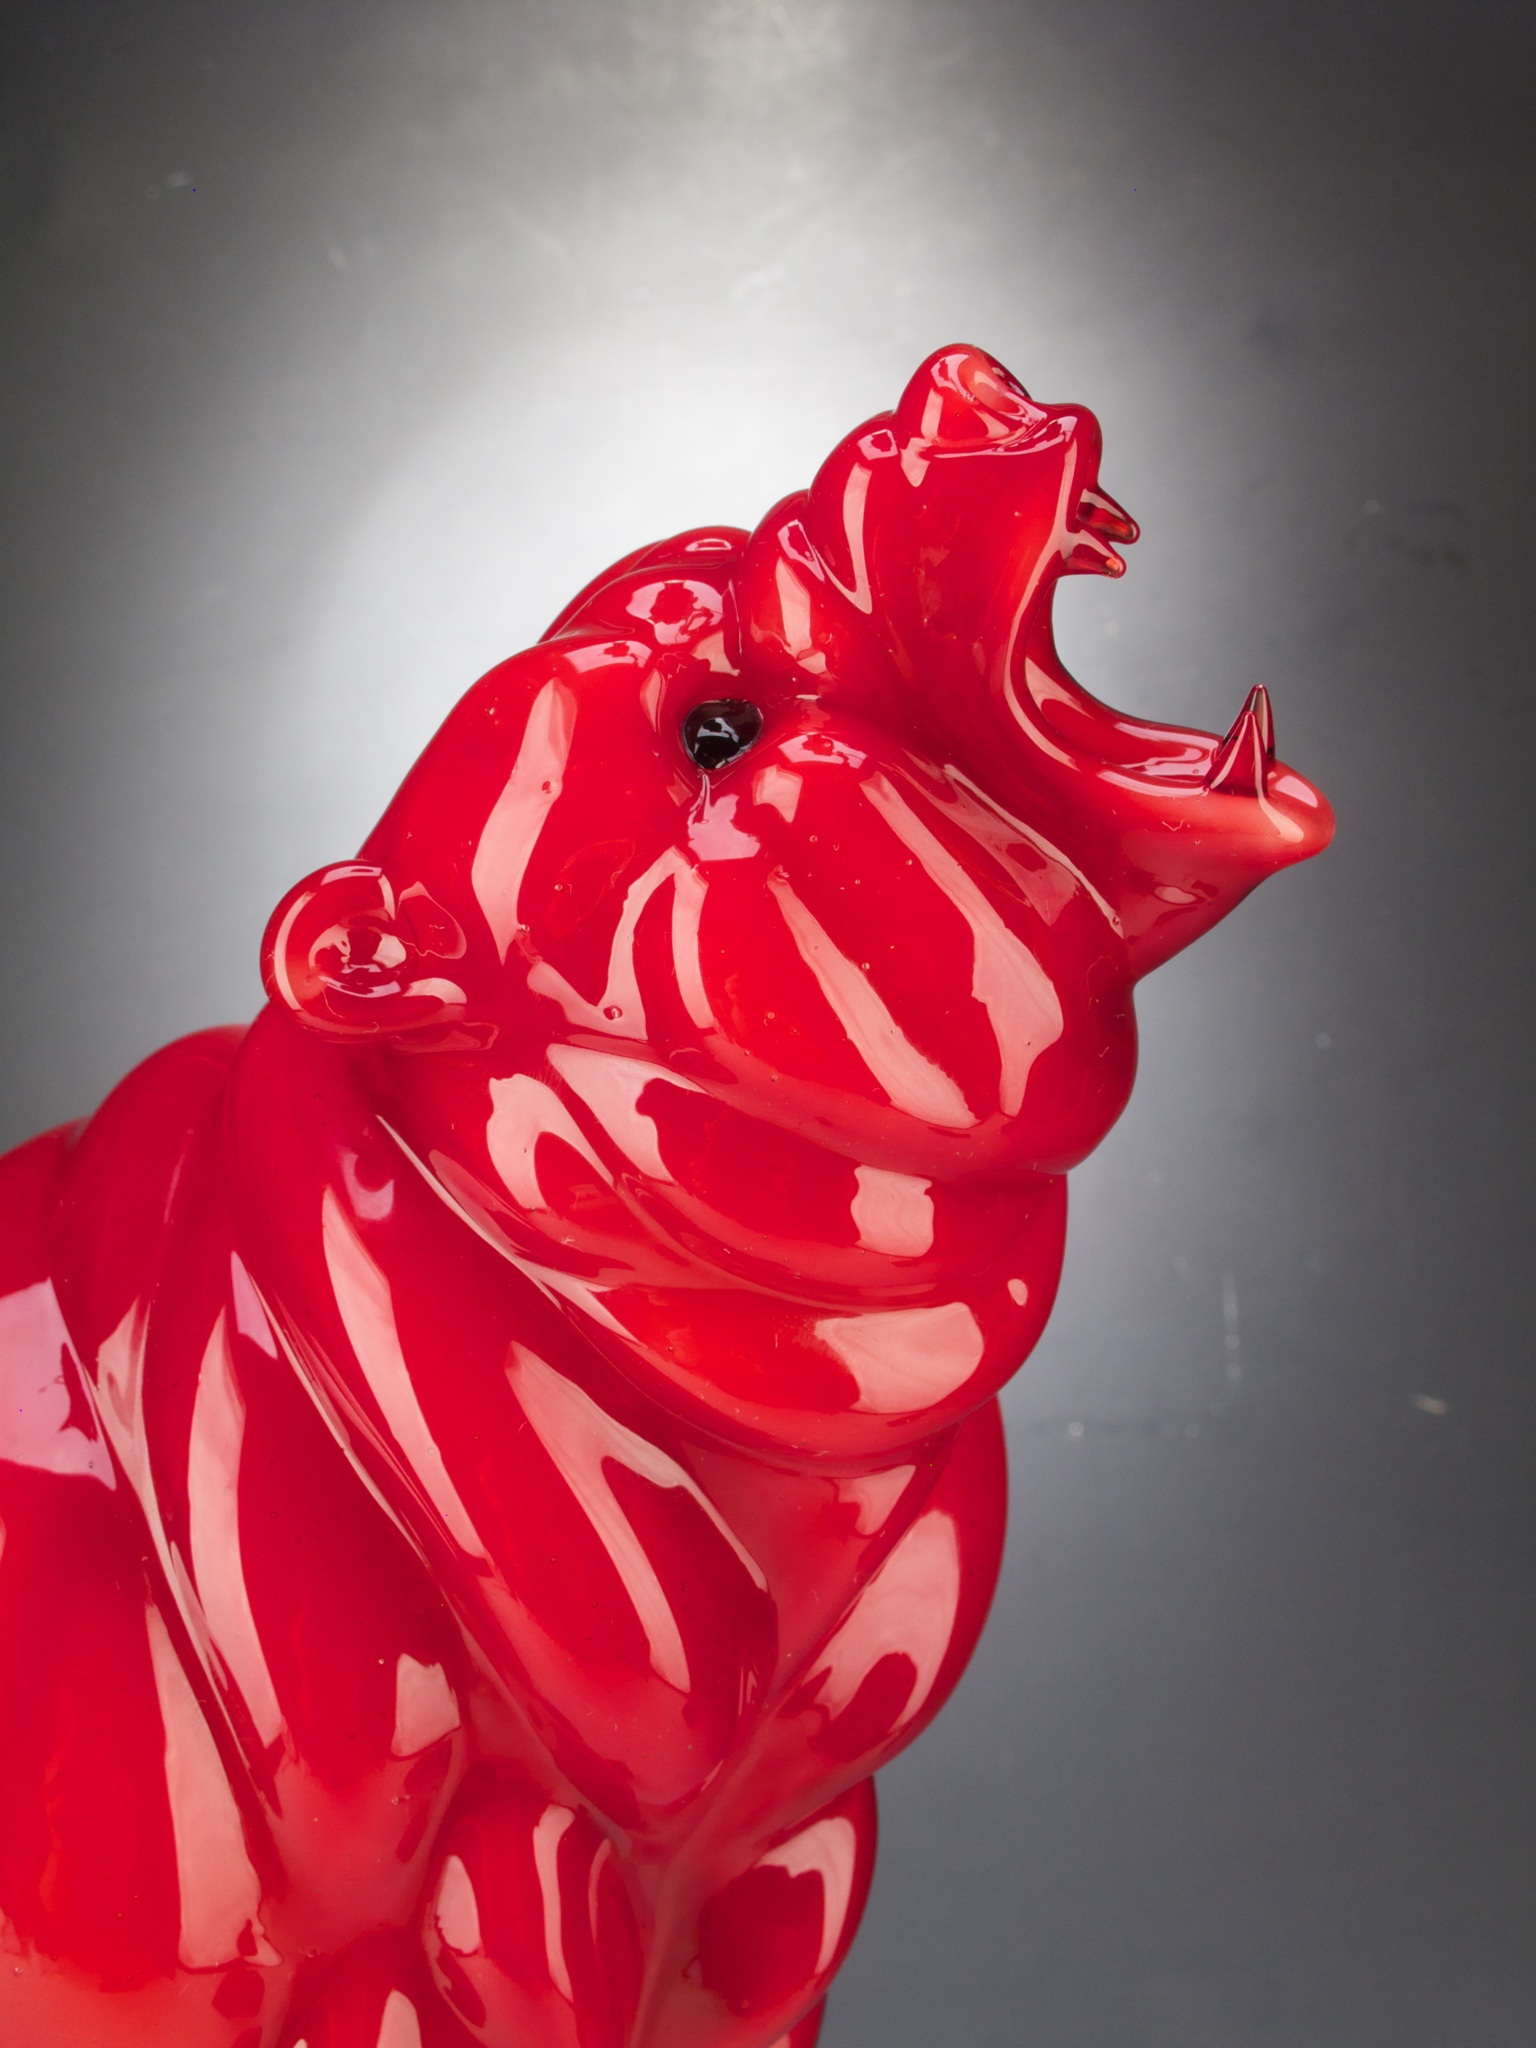 Flameworked glass grizzly bear by Chris Ahalt